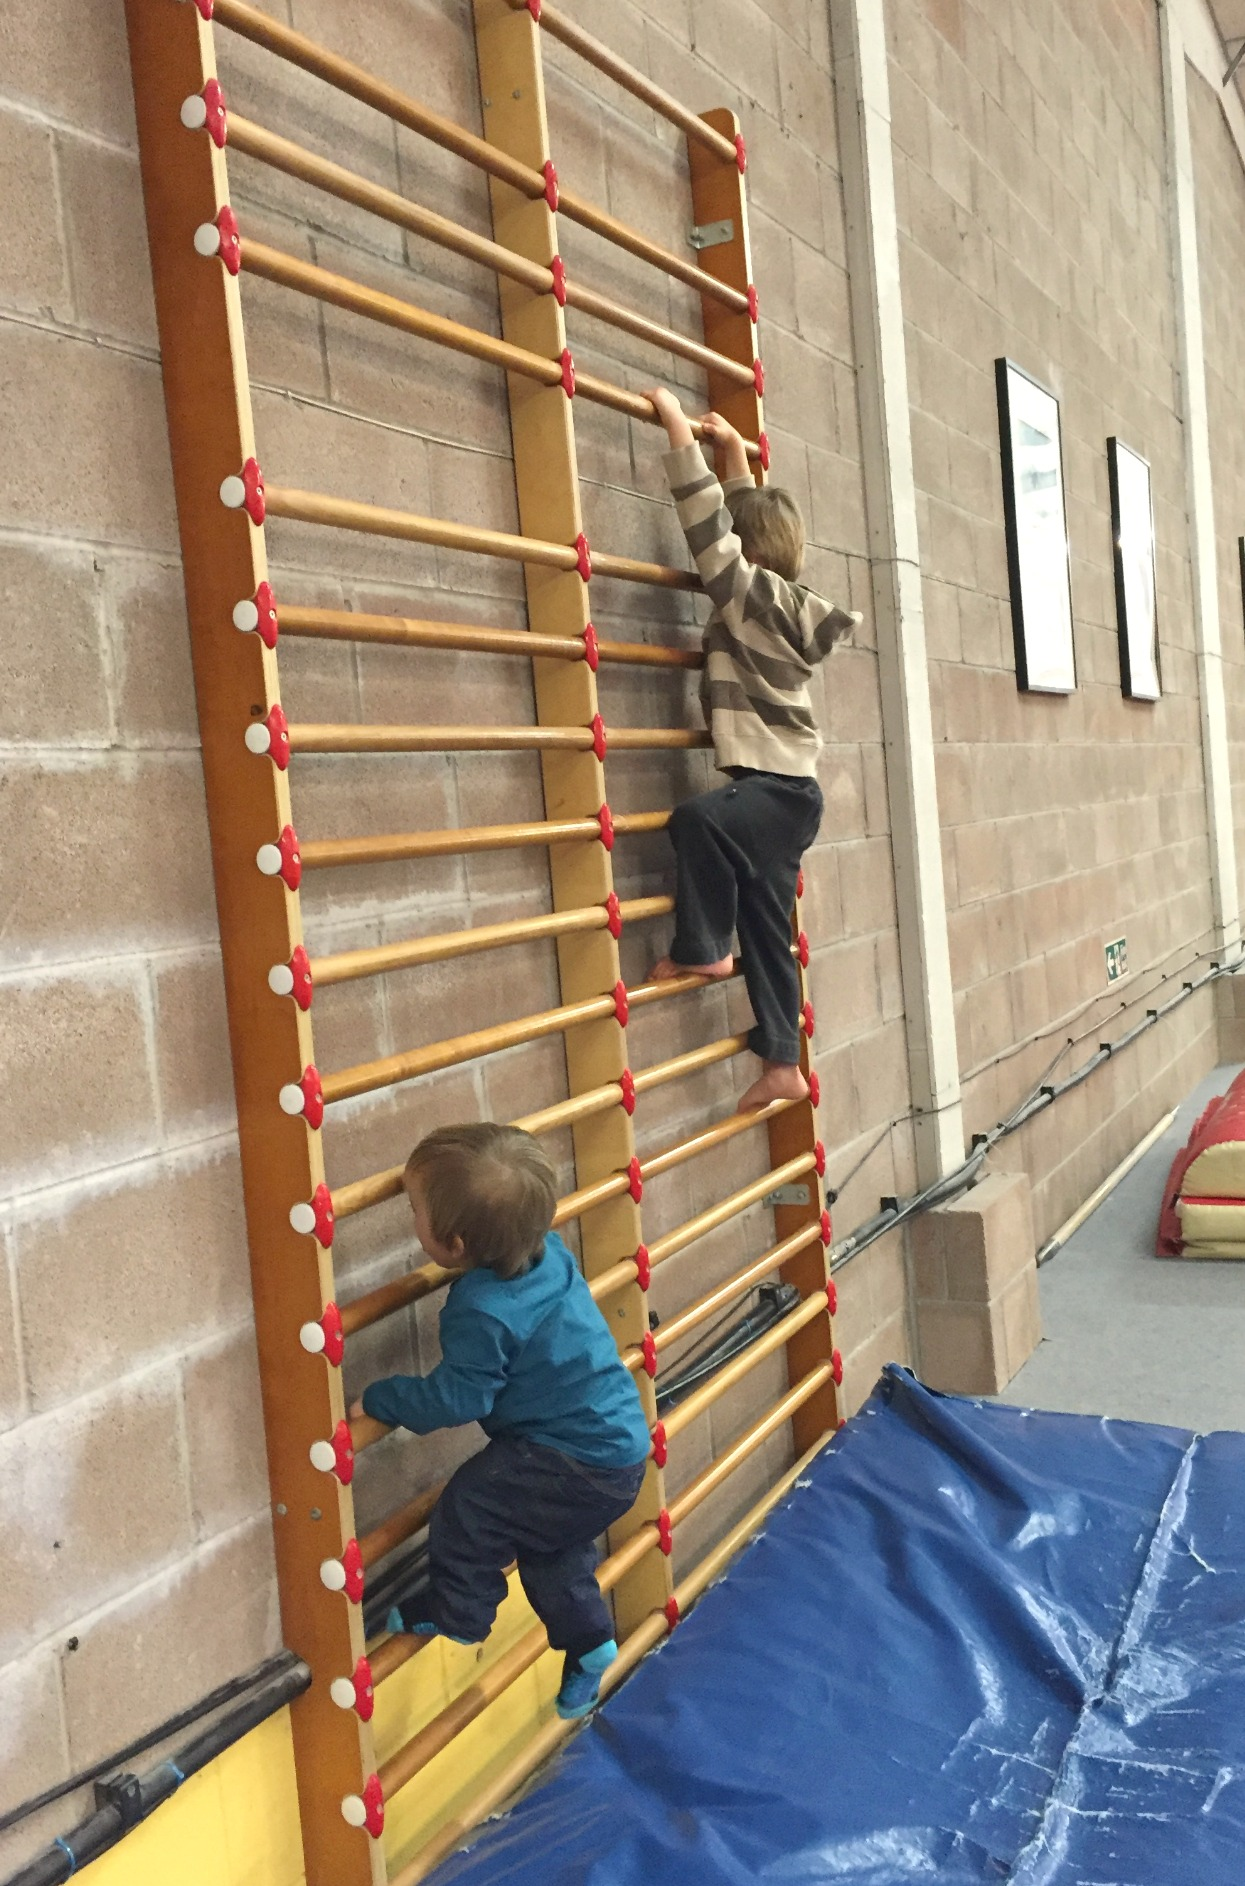 Child is a climber 1